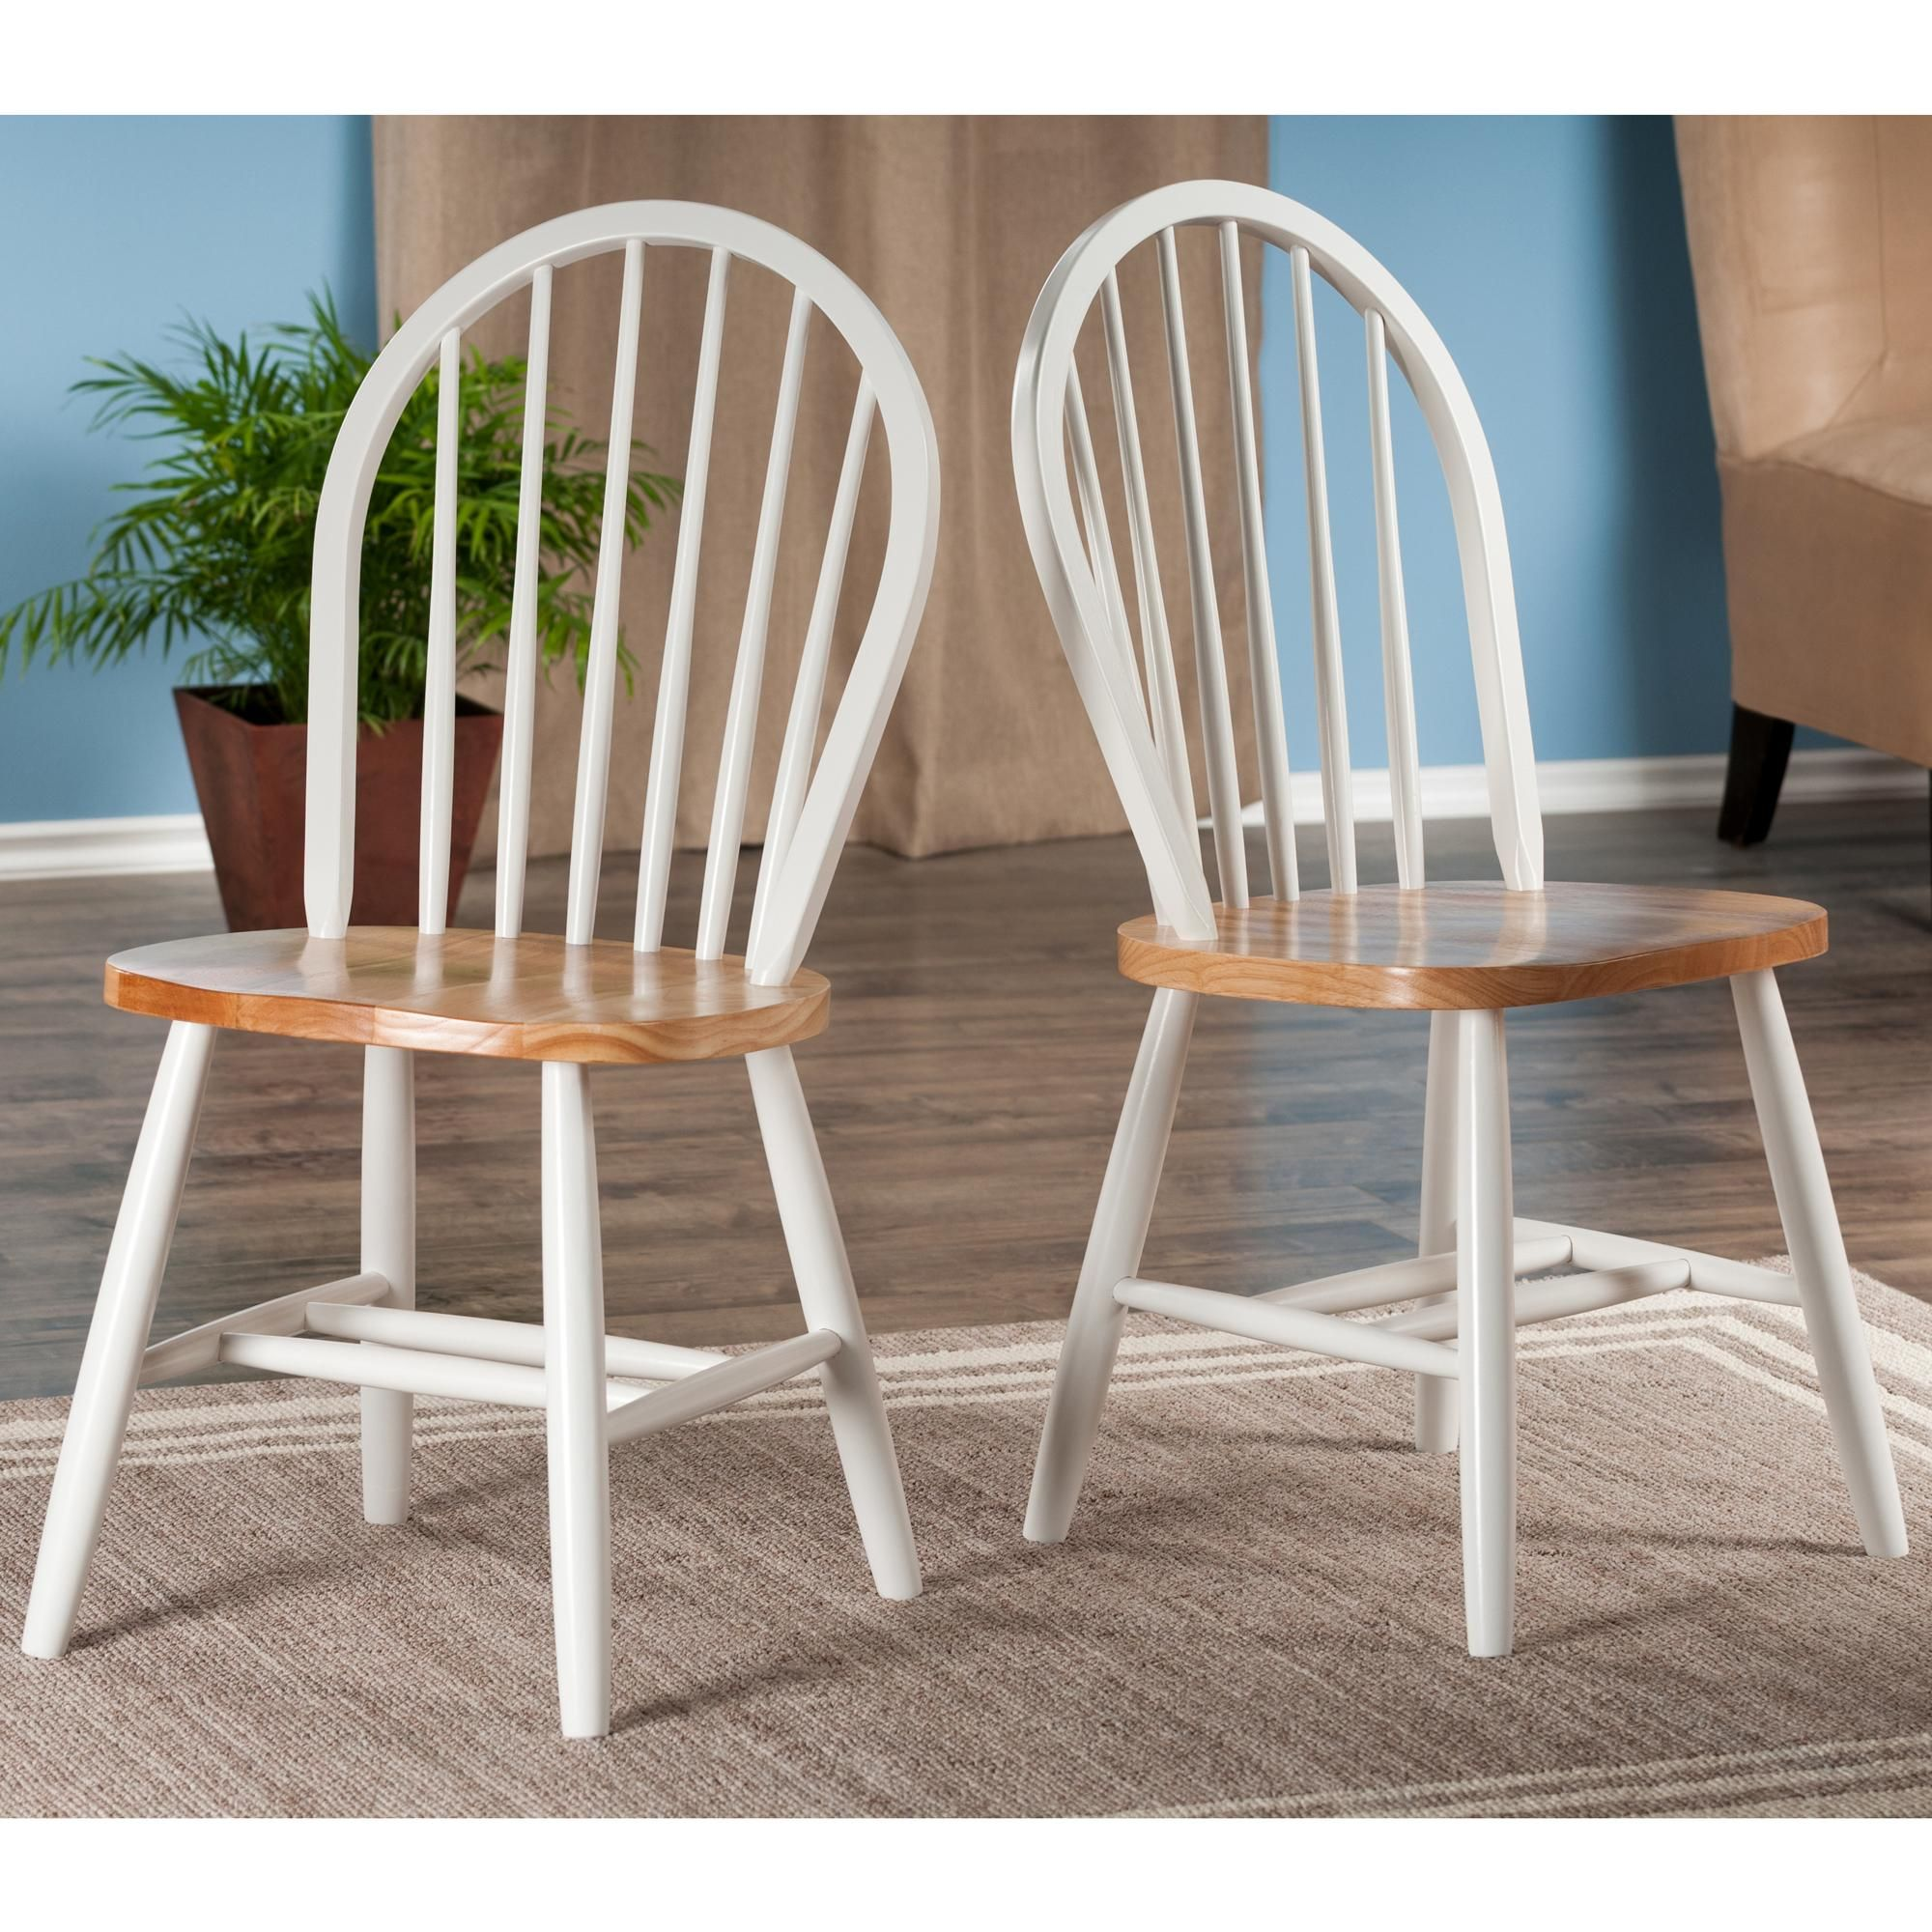 Winsome Wood Windsor Chair in Natural and White Finish Set of 2 & Winsome Wood Windsor Chair in Natural and White Finish Set of 2 ...